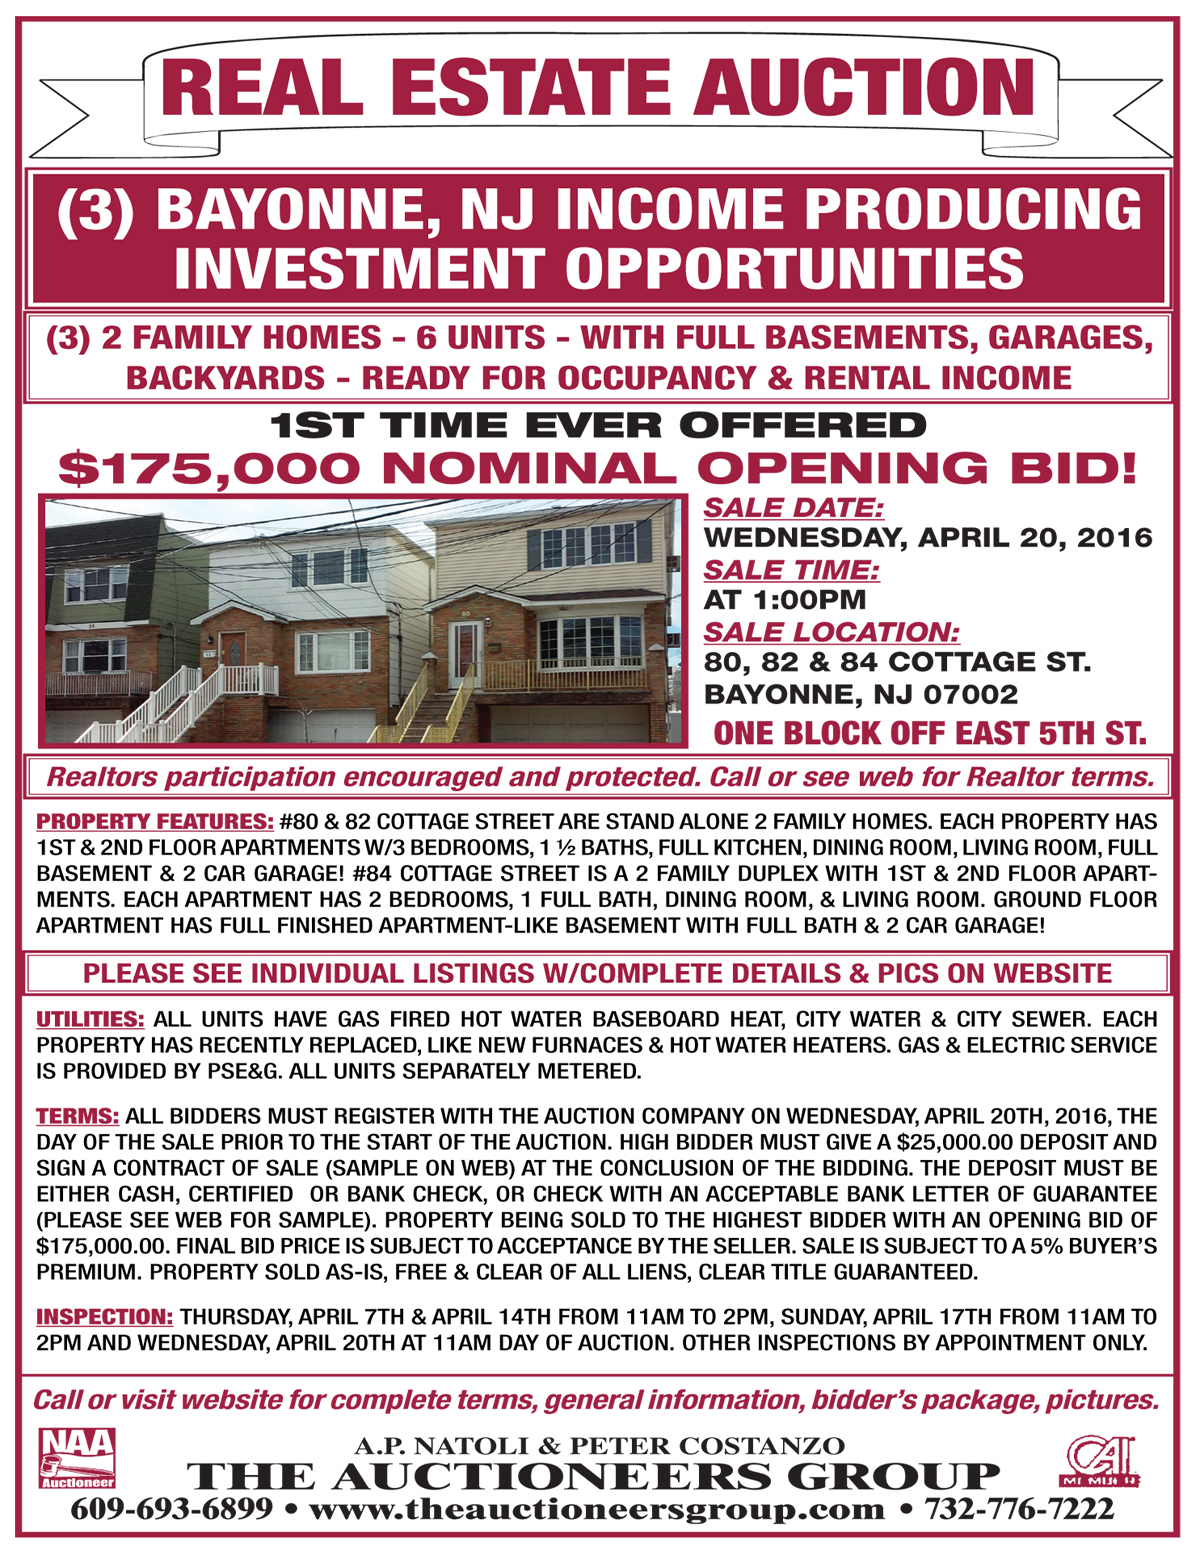 Bayonne Real Estate